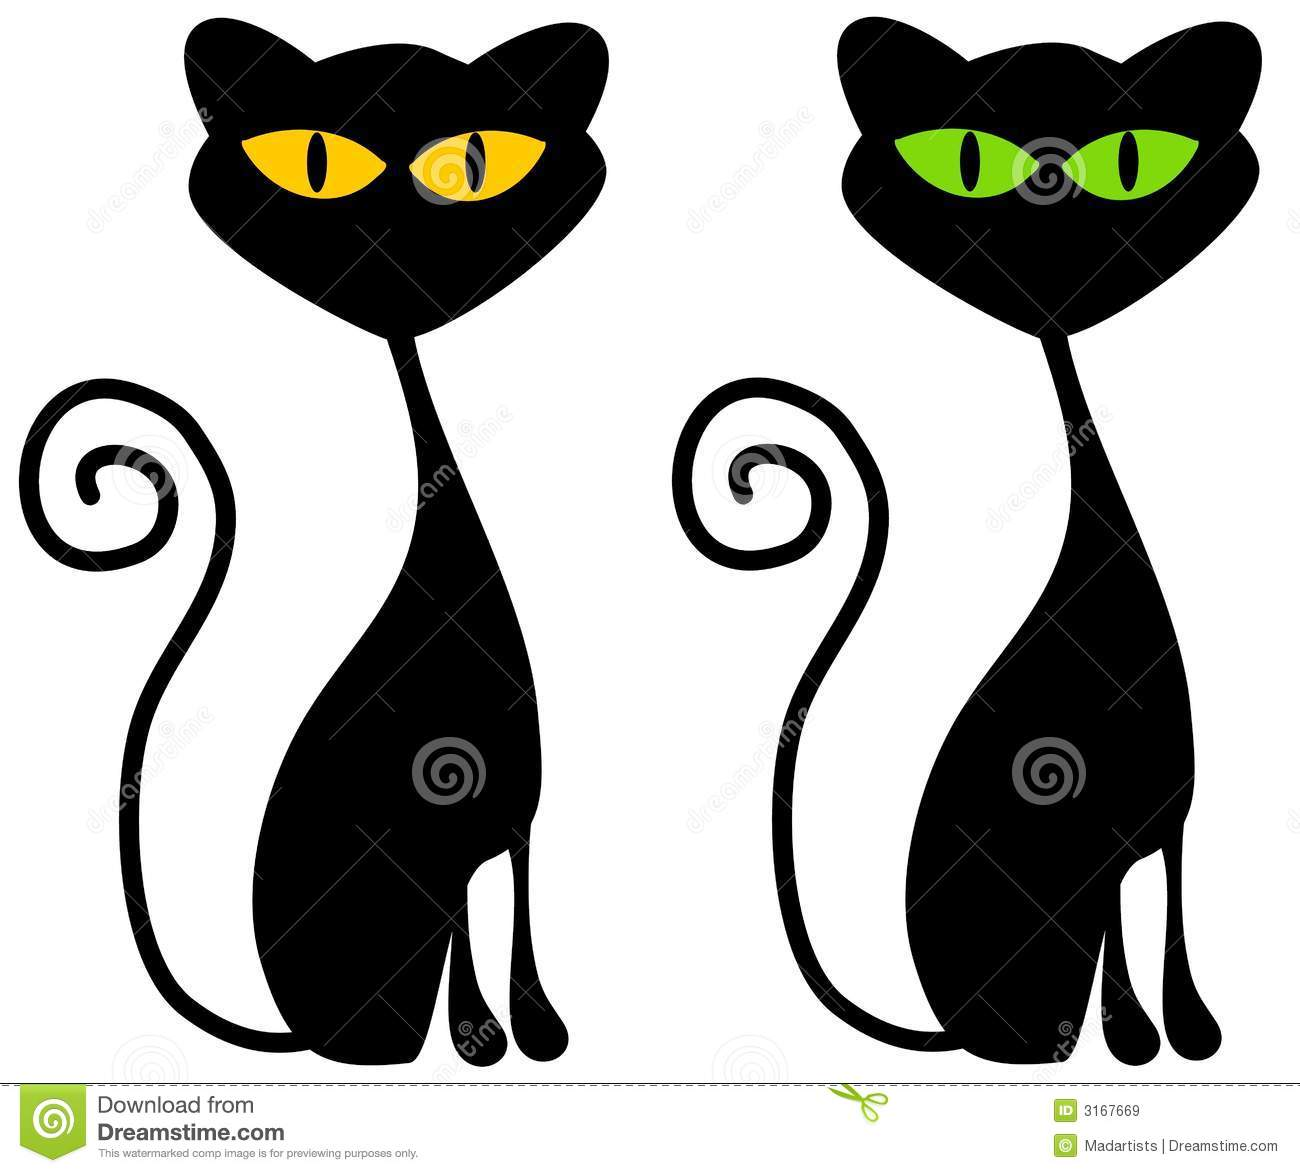 clipart panda cat - photo #44